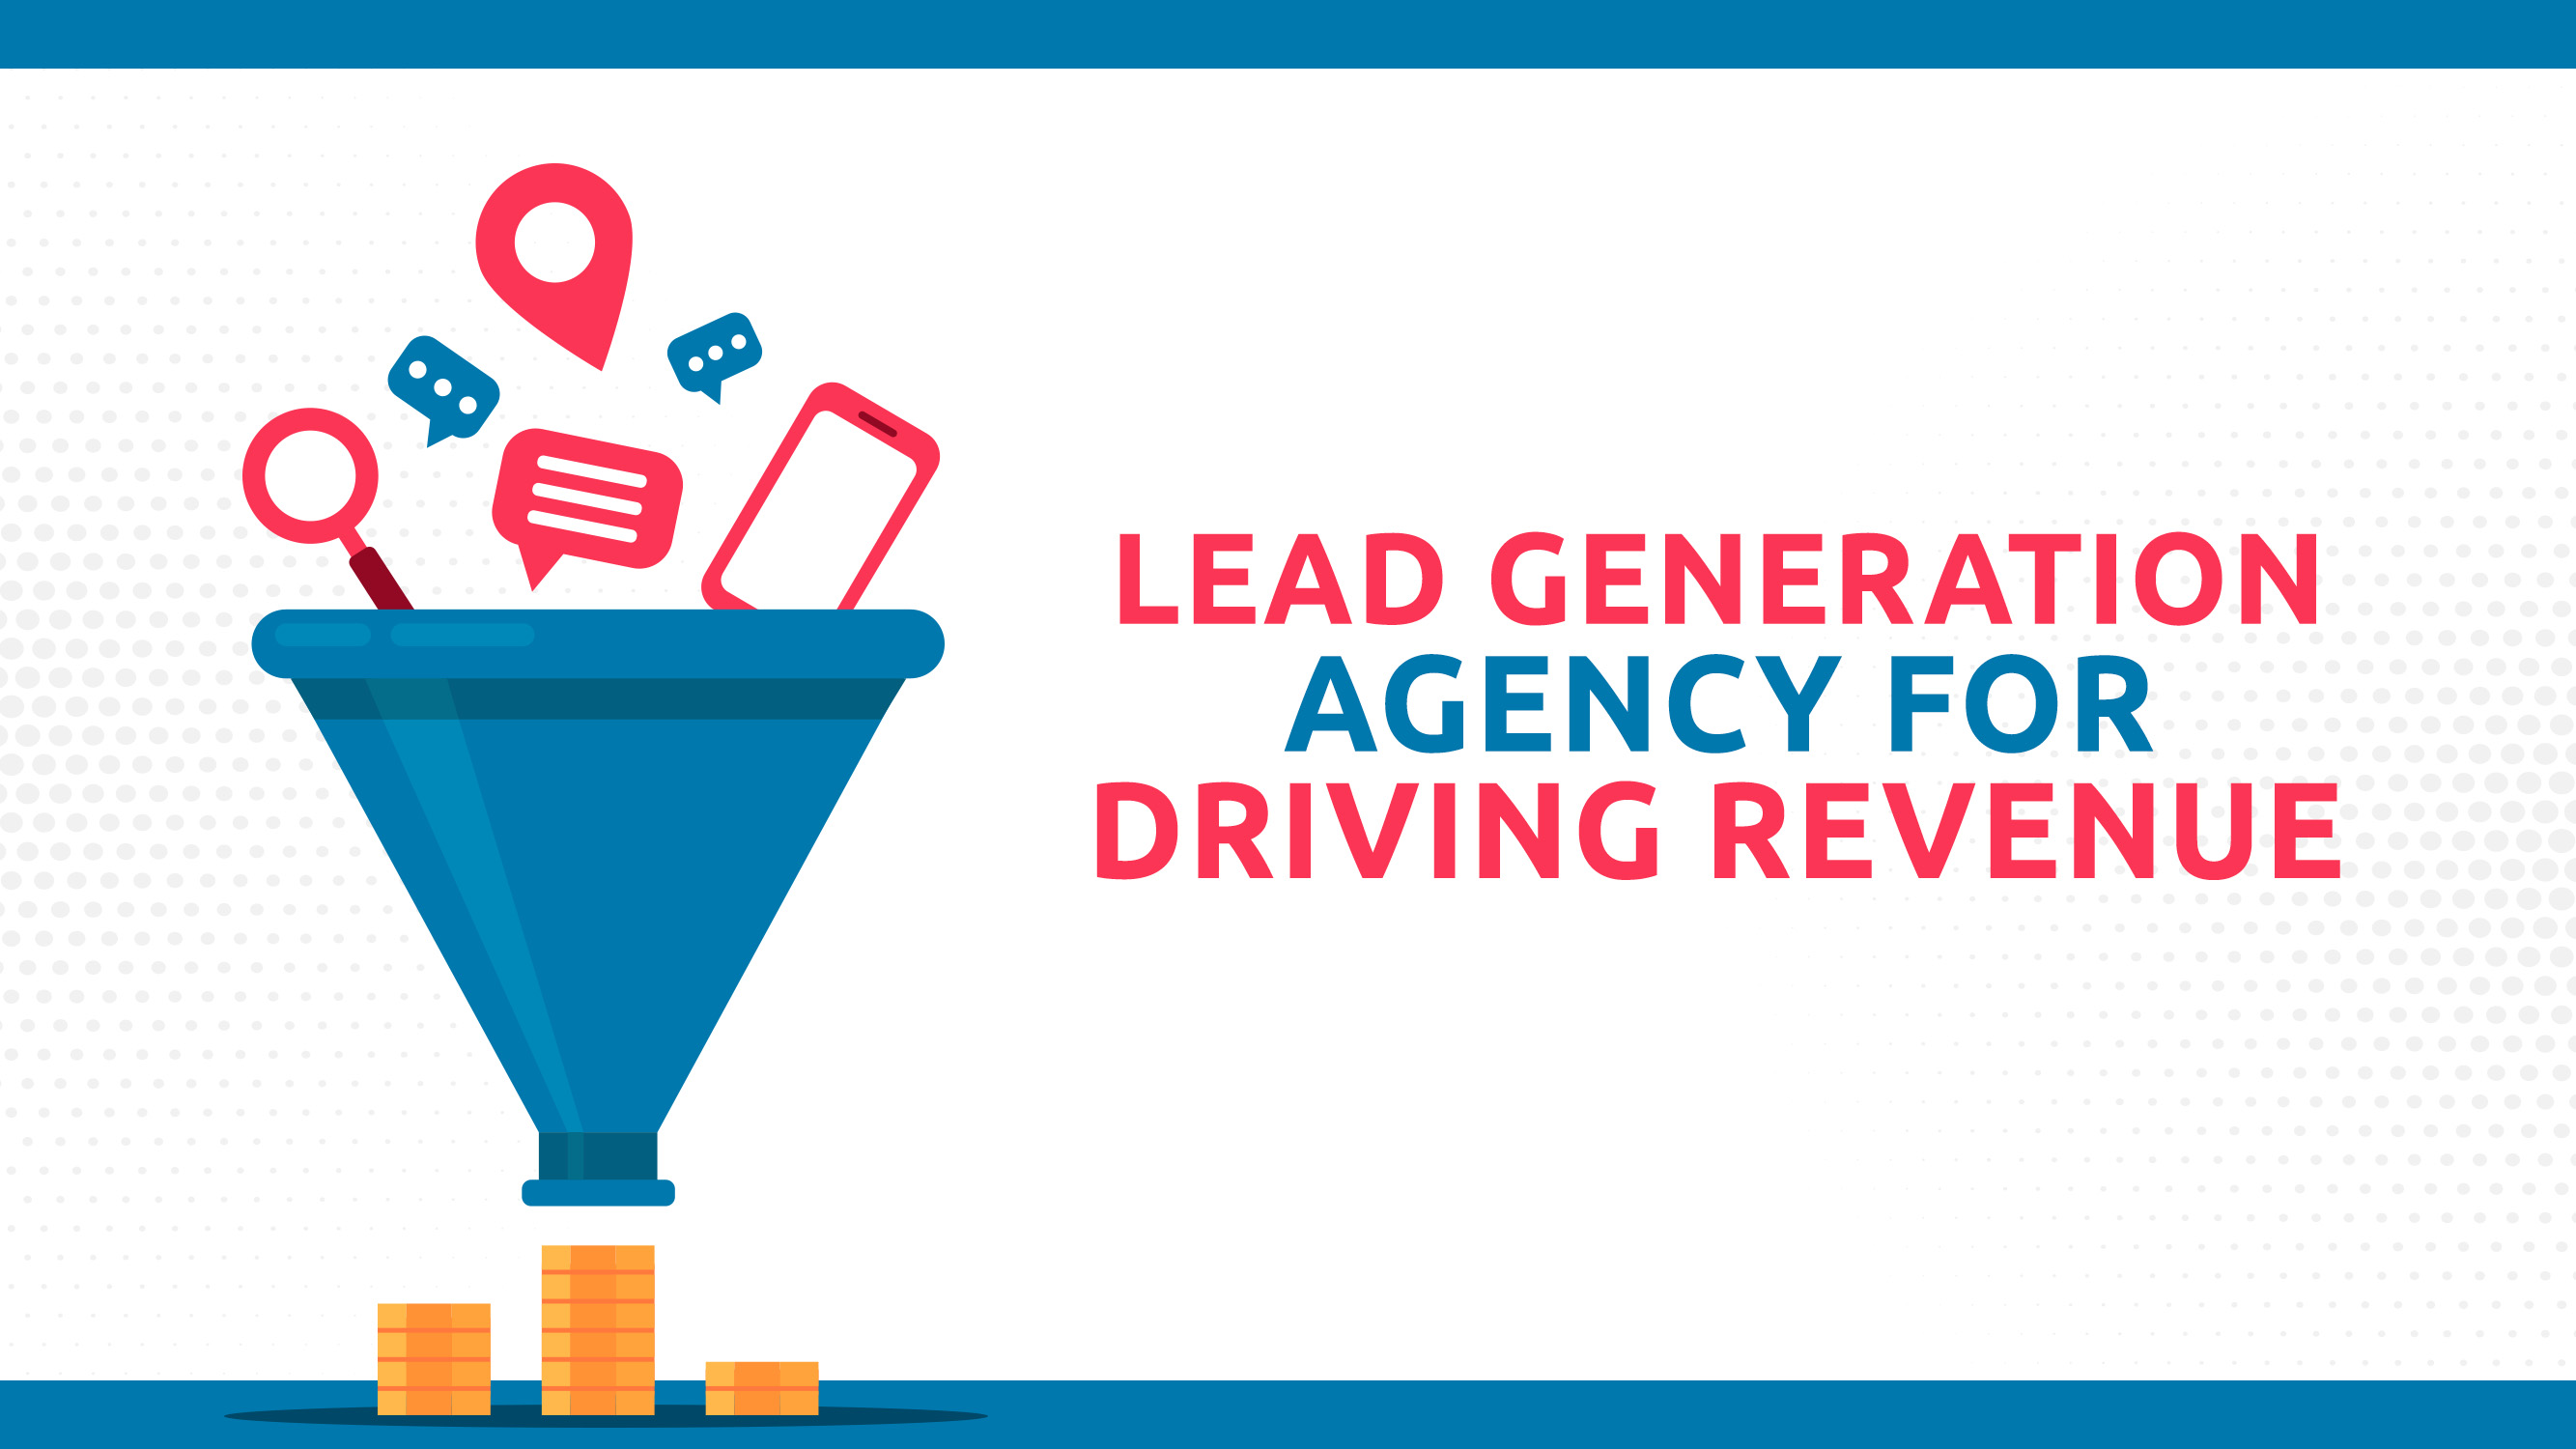 Lead Generation Agency For Driving Revenue